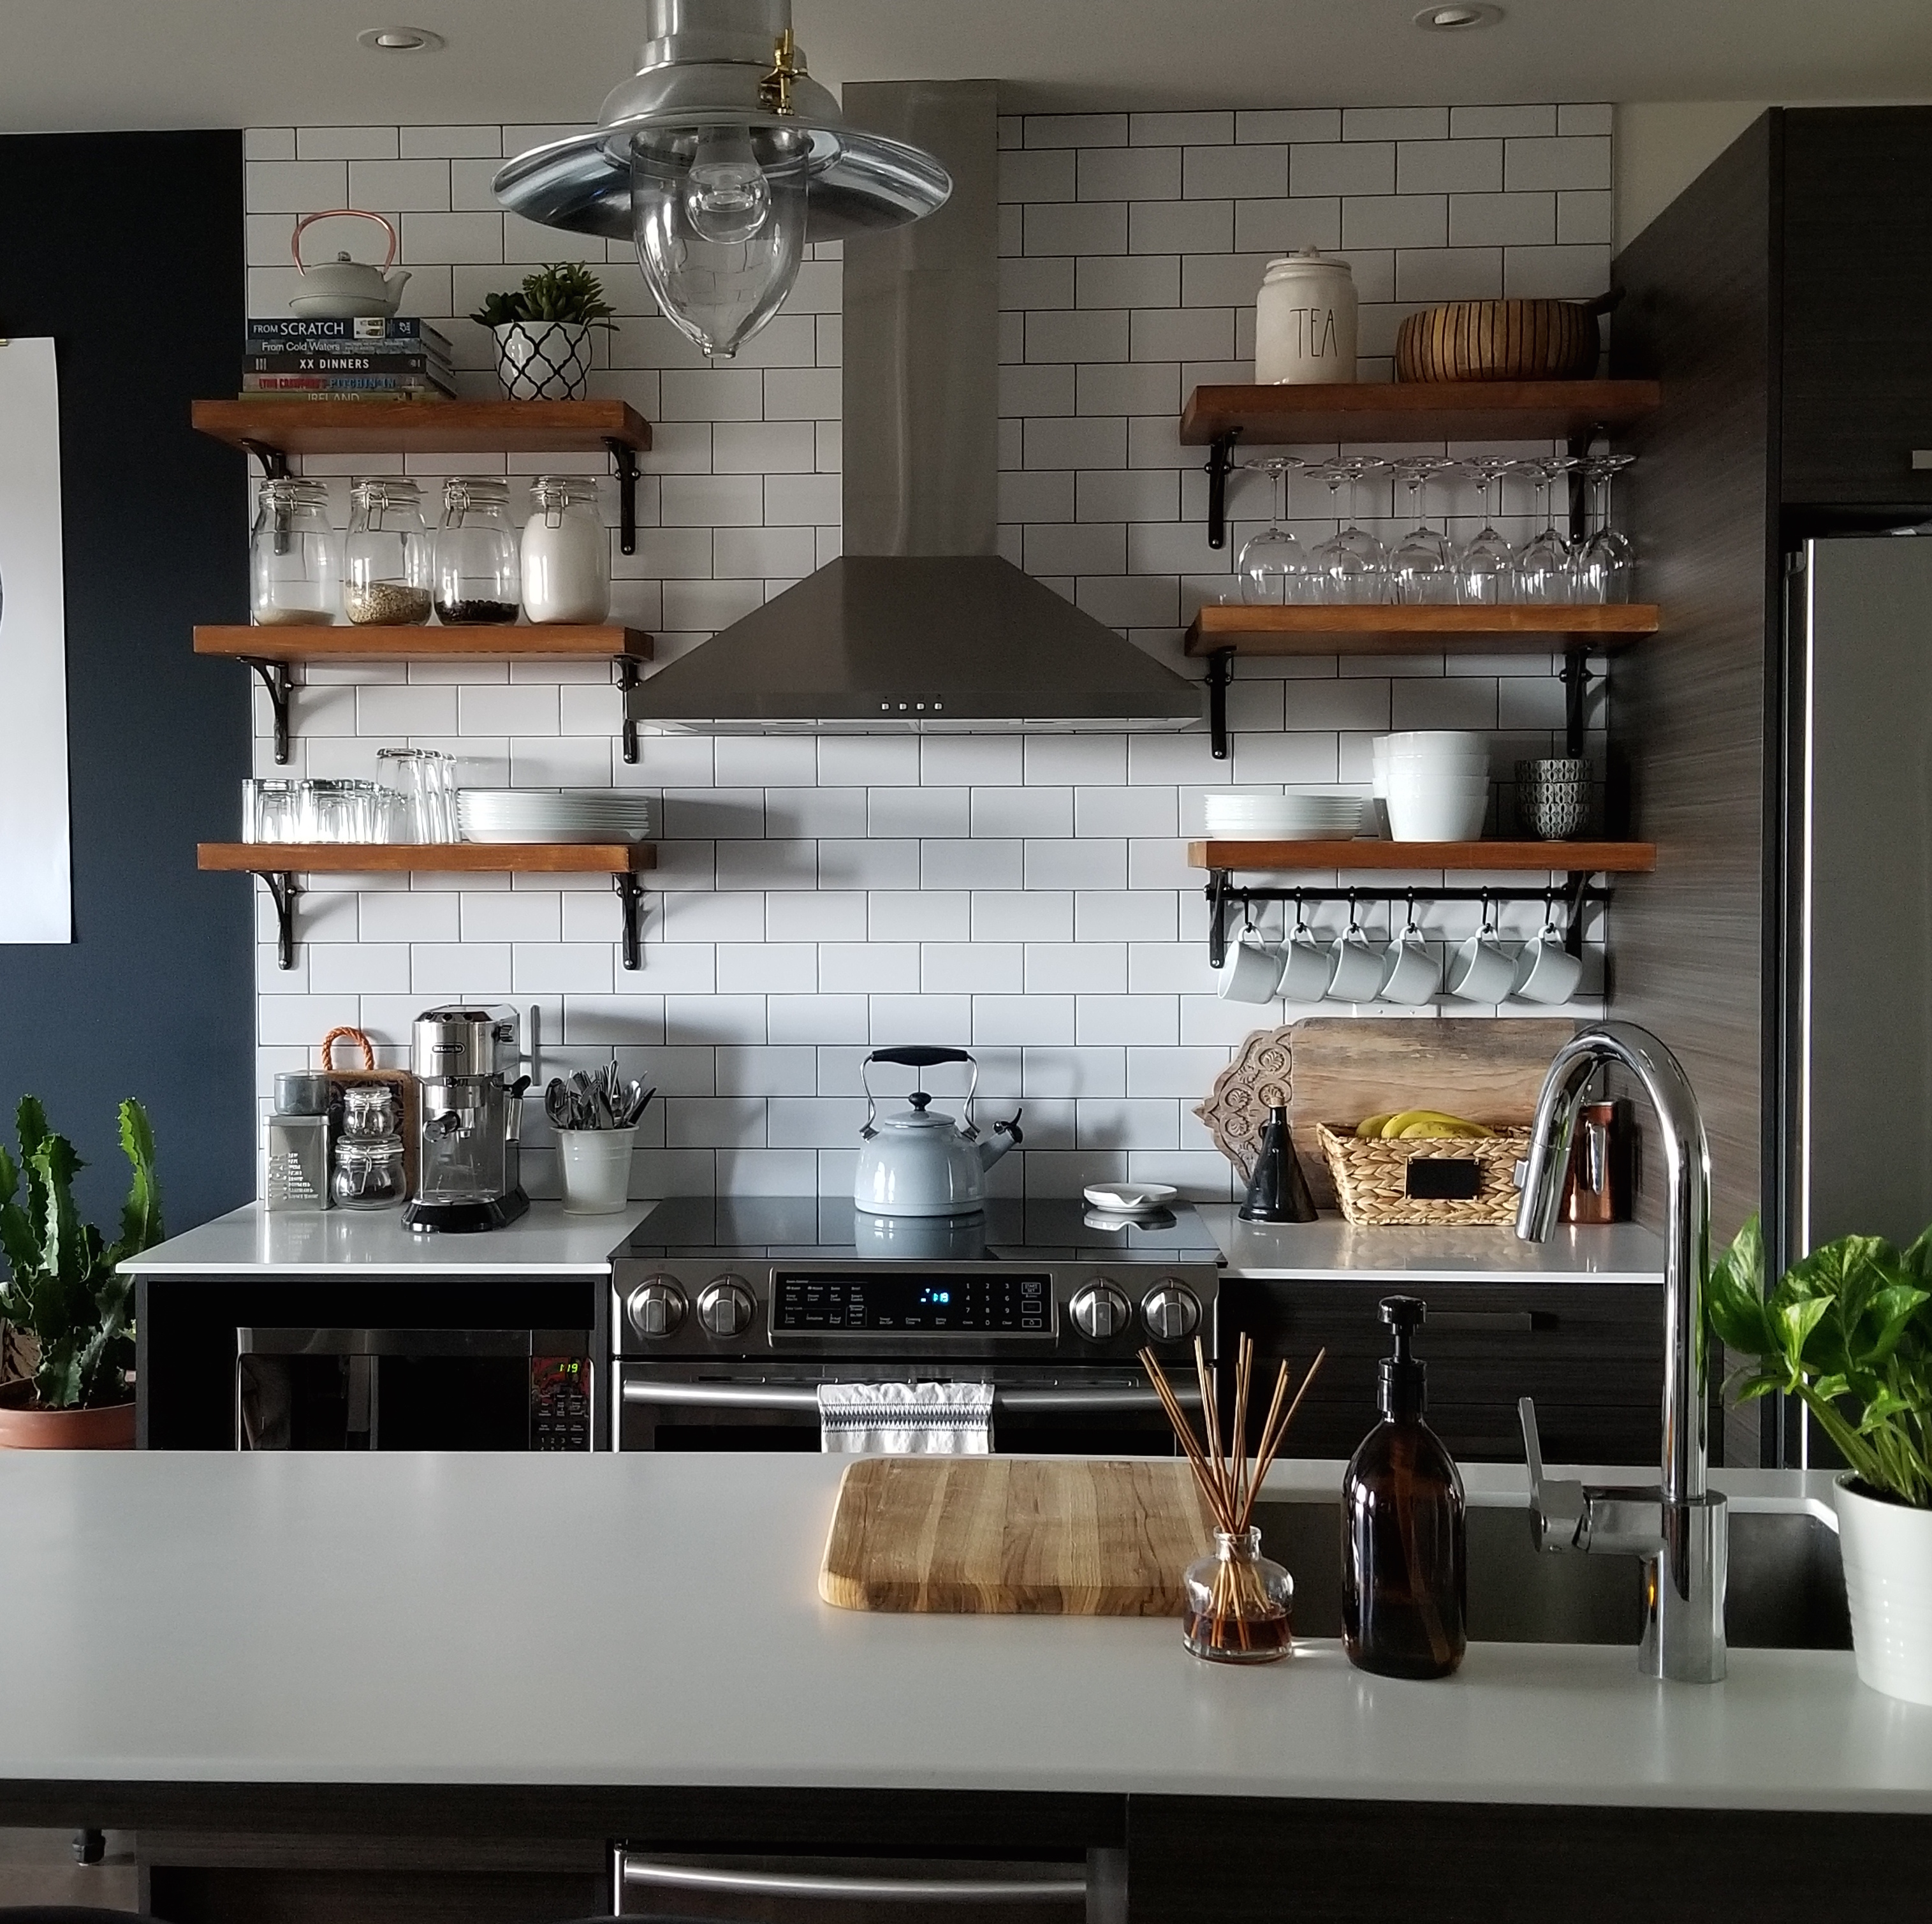 Open Kitchen Shelves Instead Of Cabinets: Small Space Living: 5 Design Mistakes You Should Avoid